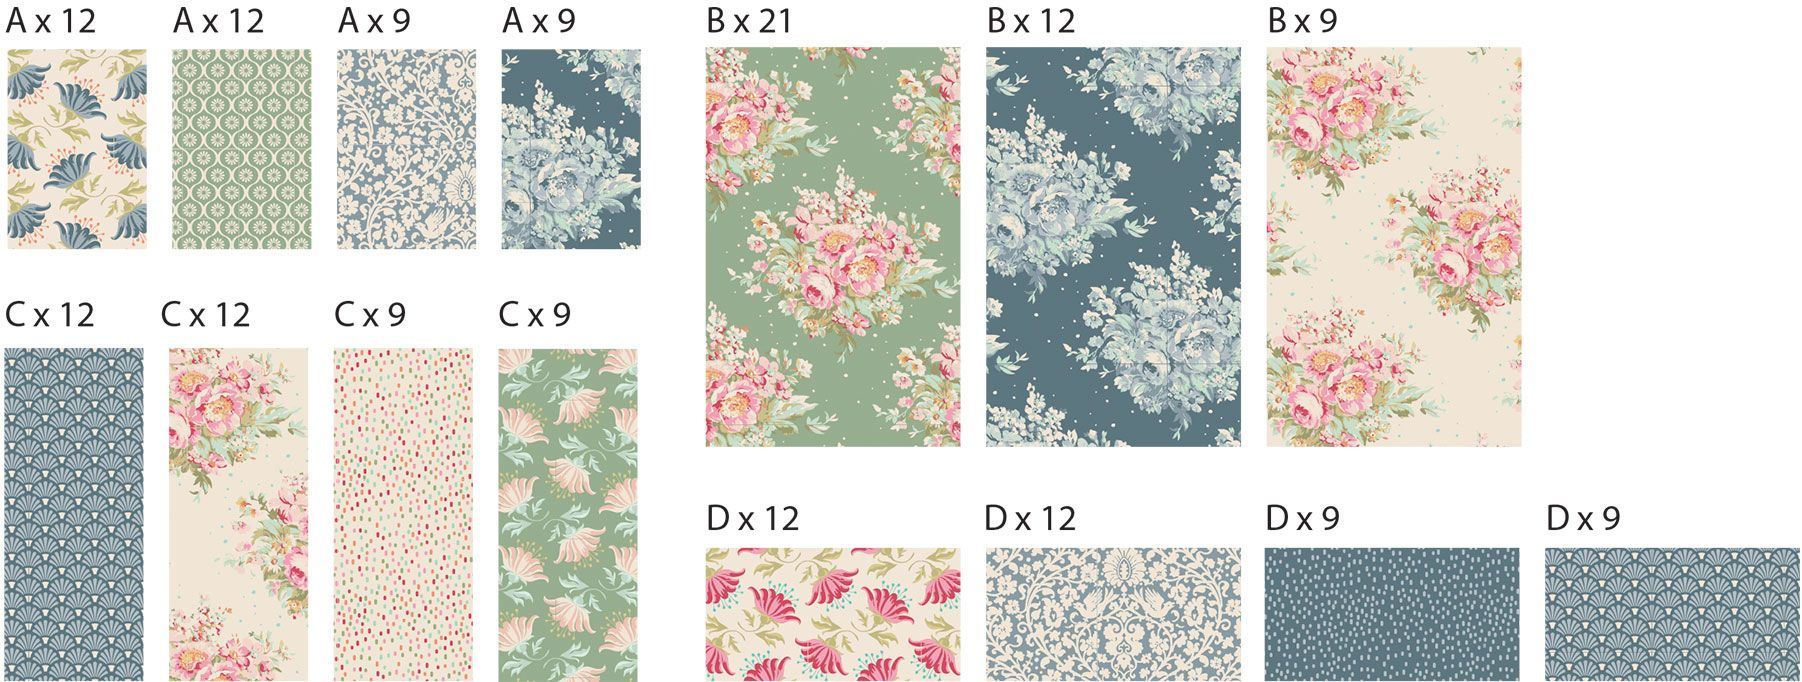 The Painting Flowers Quilt | Tildas World | Blanket | Pinterest ...